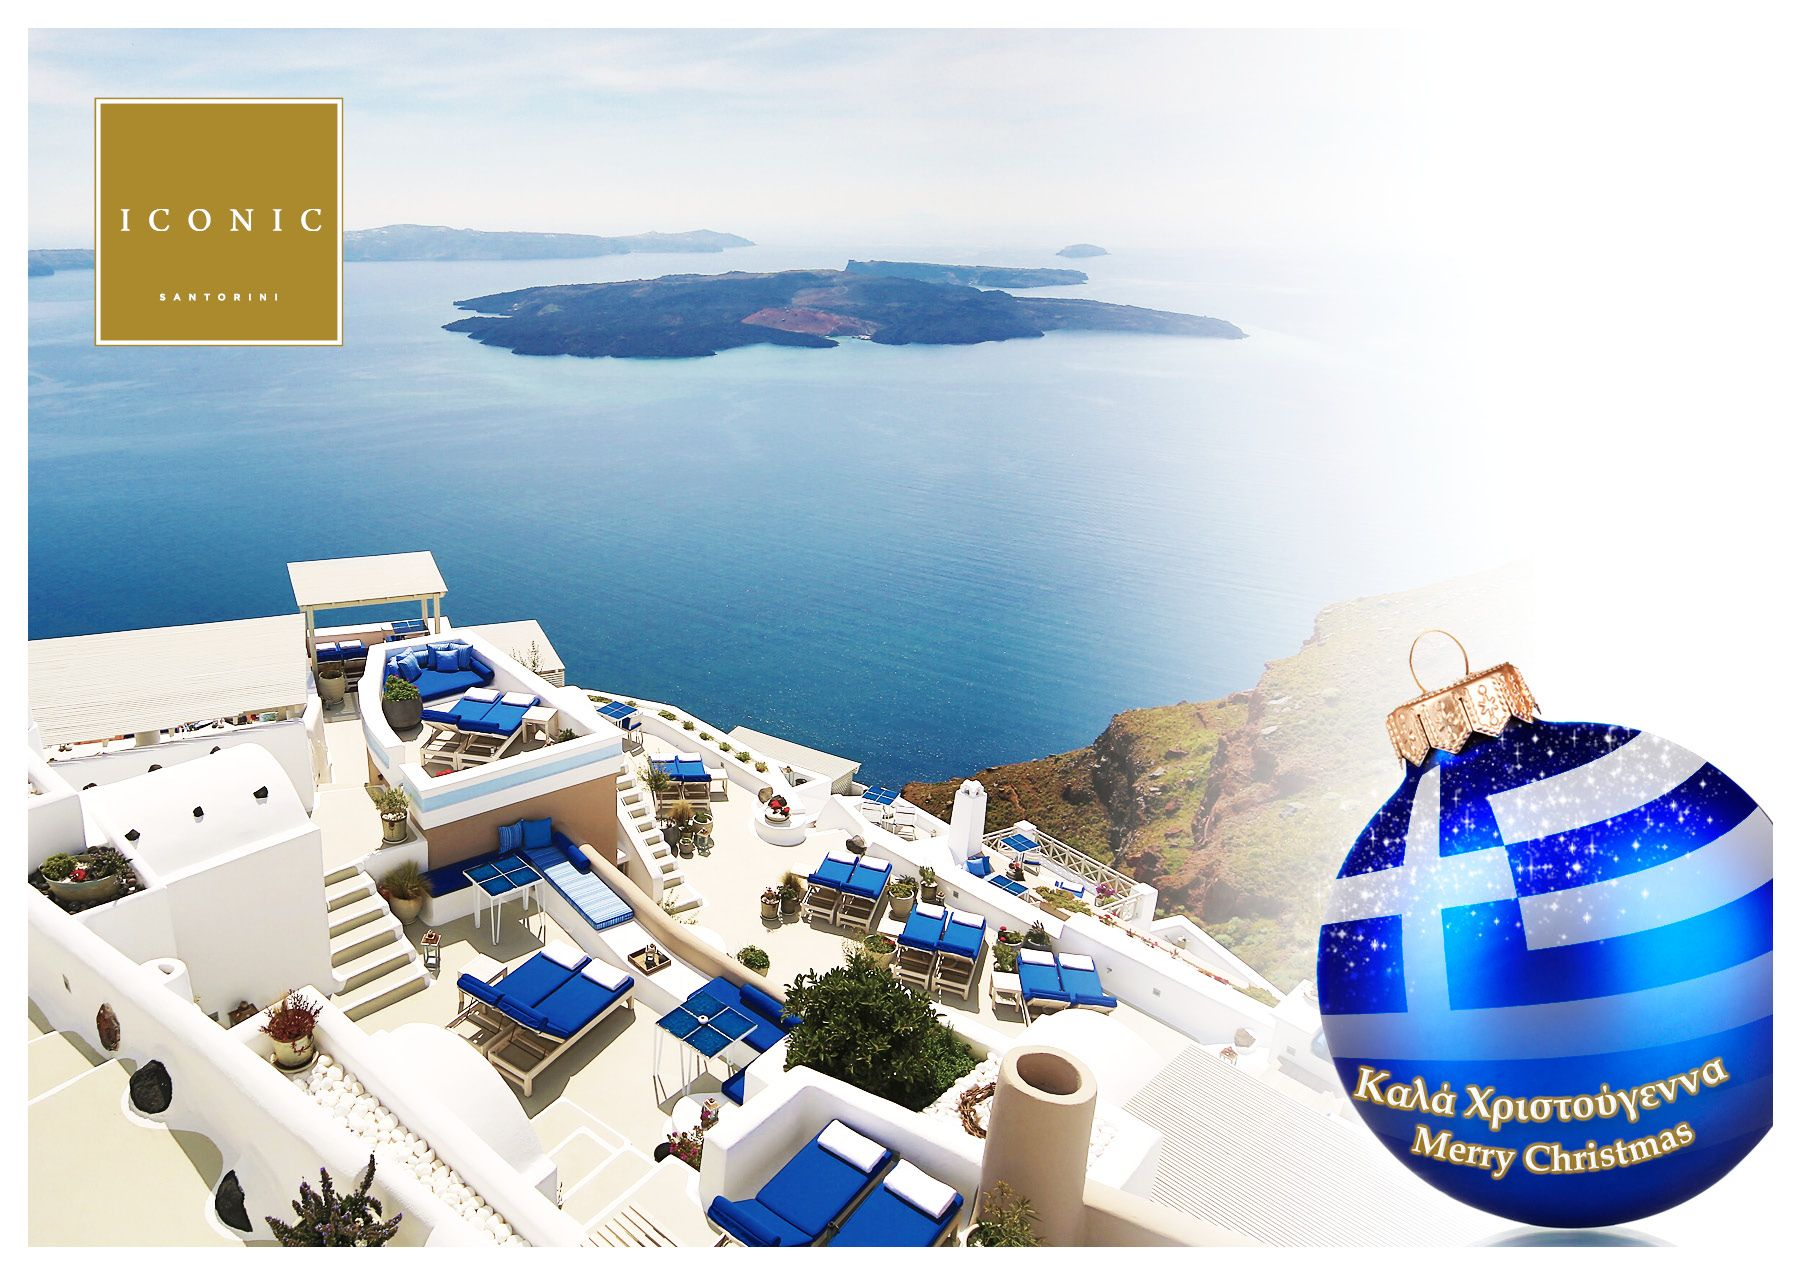 Happy New Year From Iconic Santorini And Best Wishes For